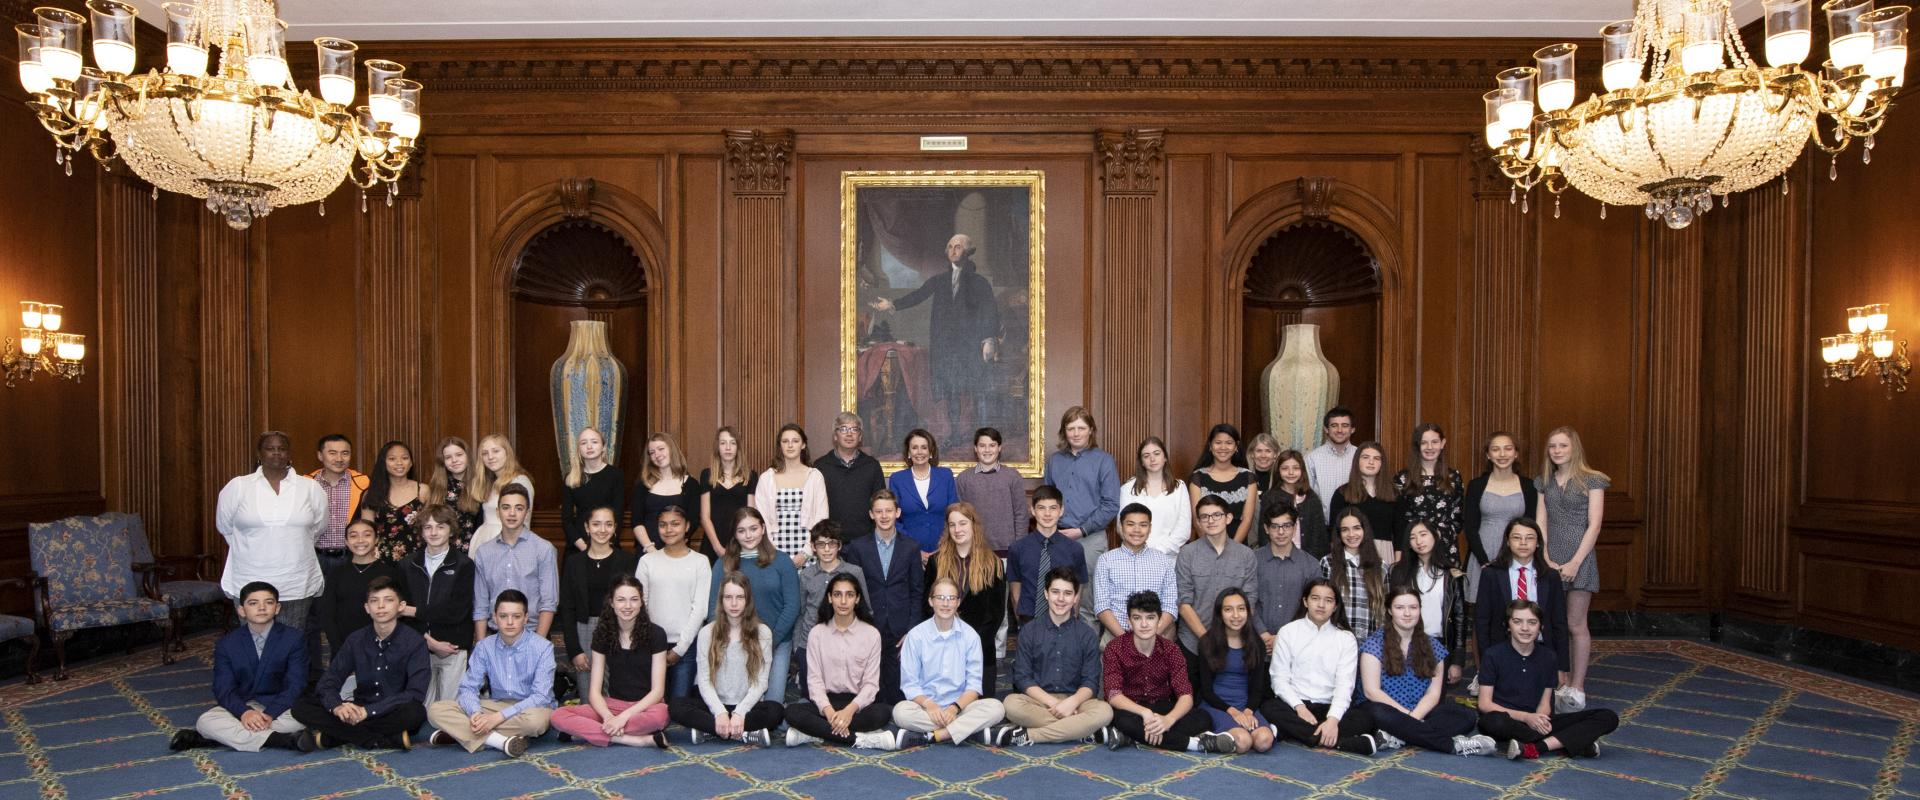 Congresswoman Pelosi meets with 8th grade students from Children's Day School in San Francisco where they discussed gun violence prevention during their visit to Capitol Hill.